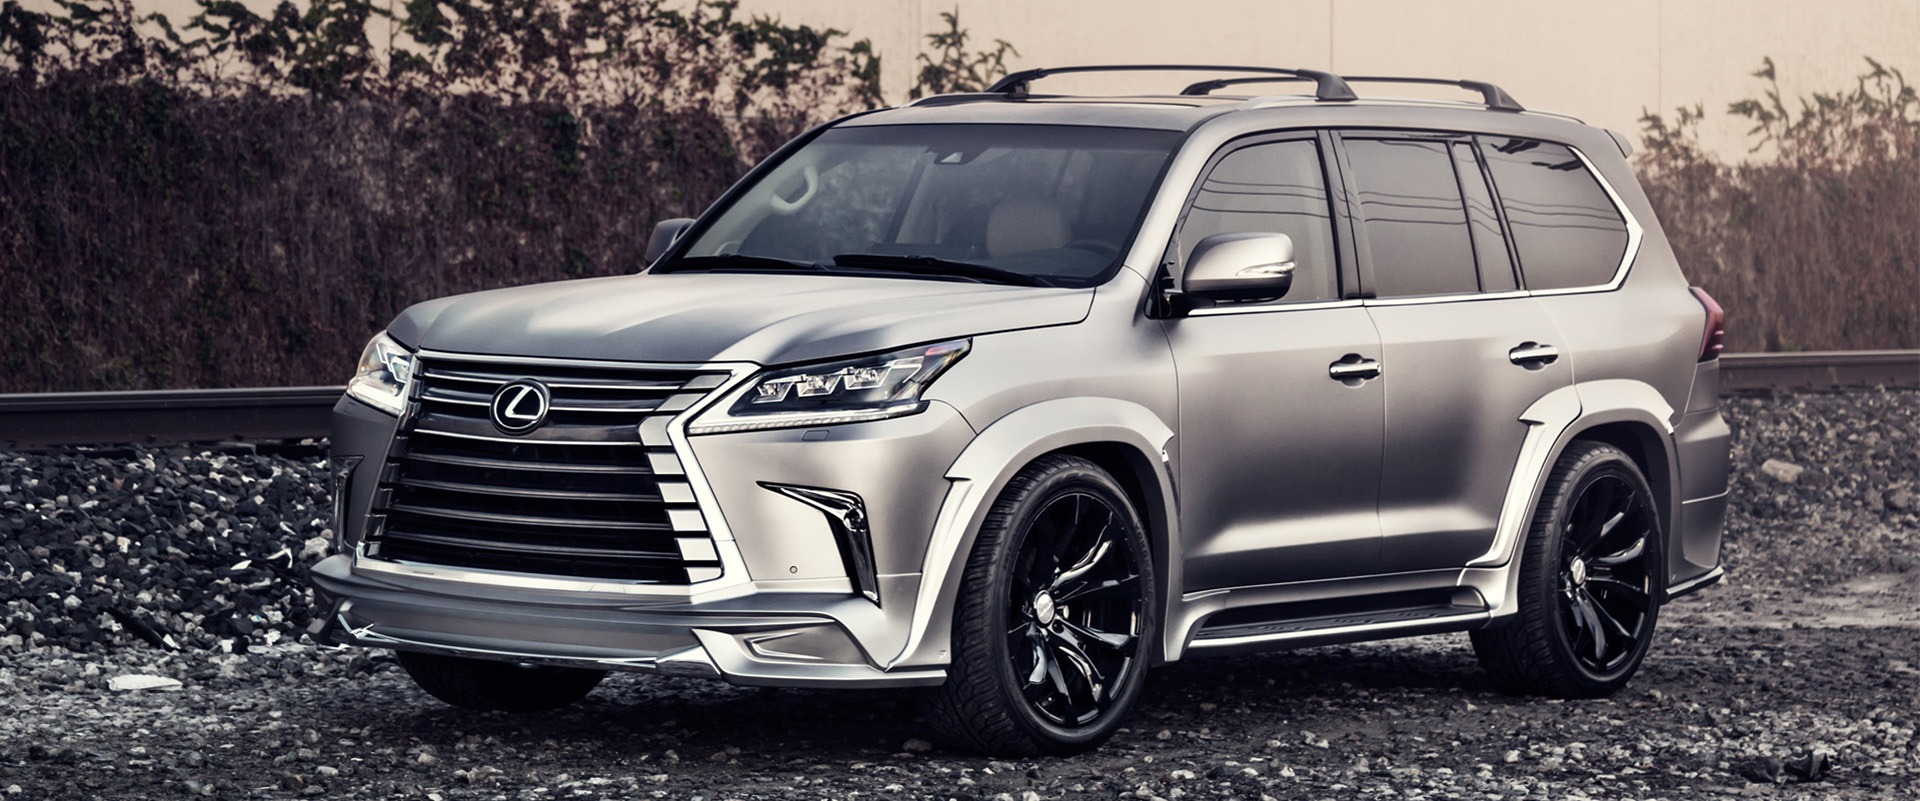 wald lexus lx570 home page banner